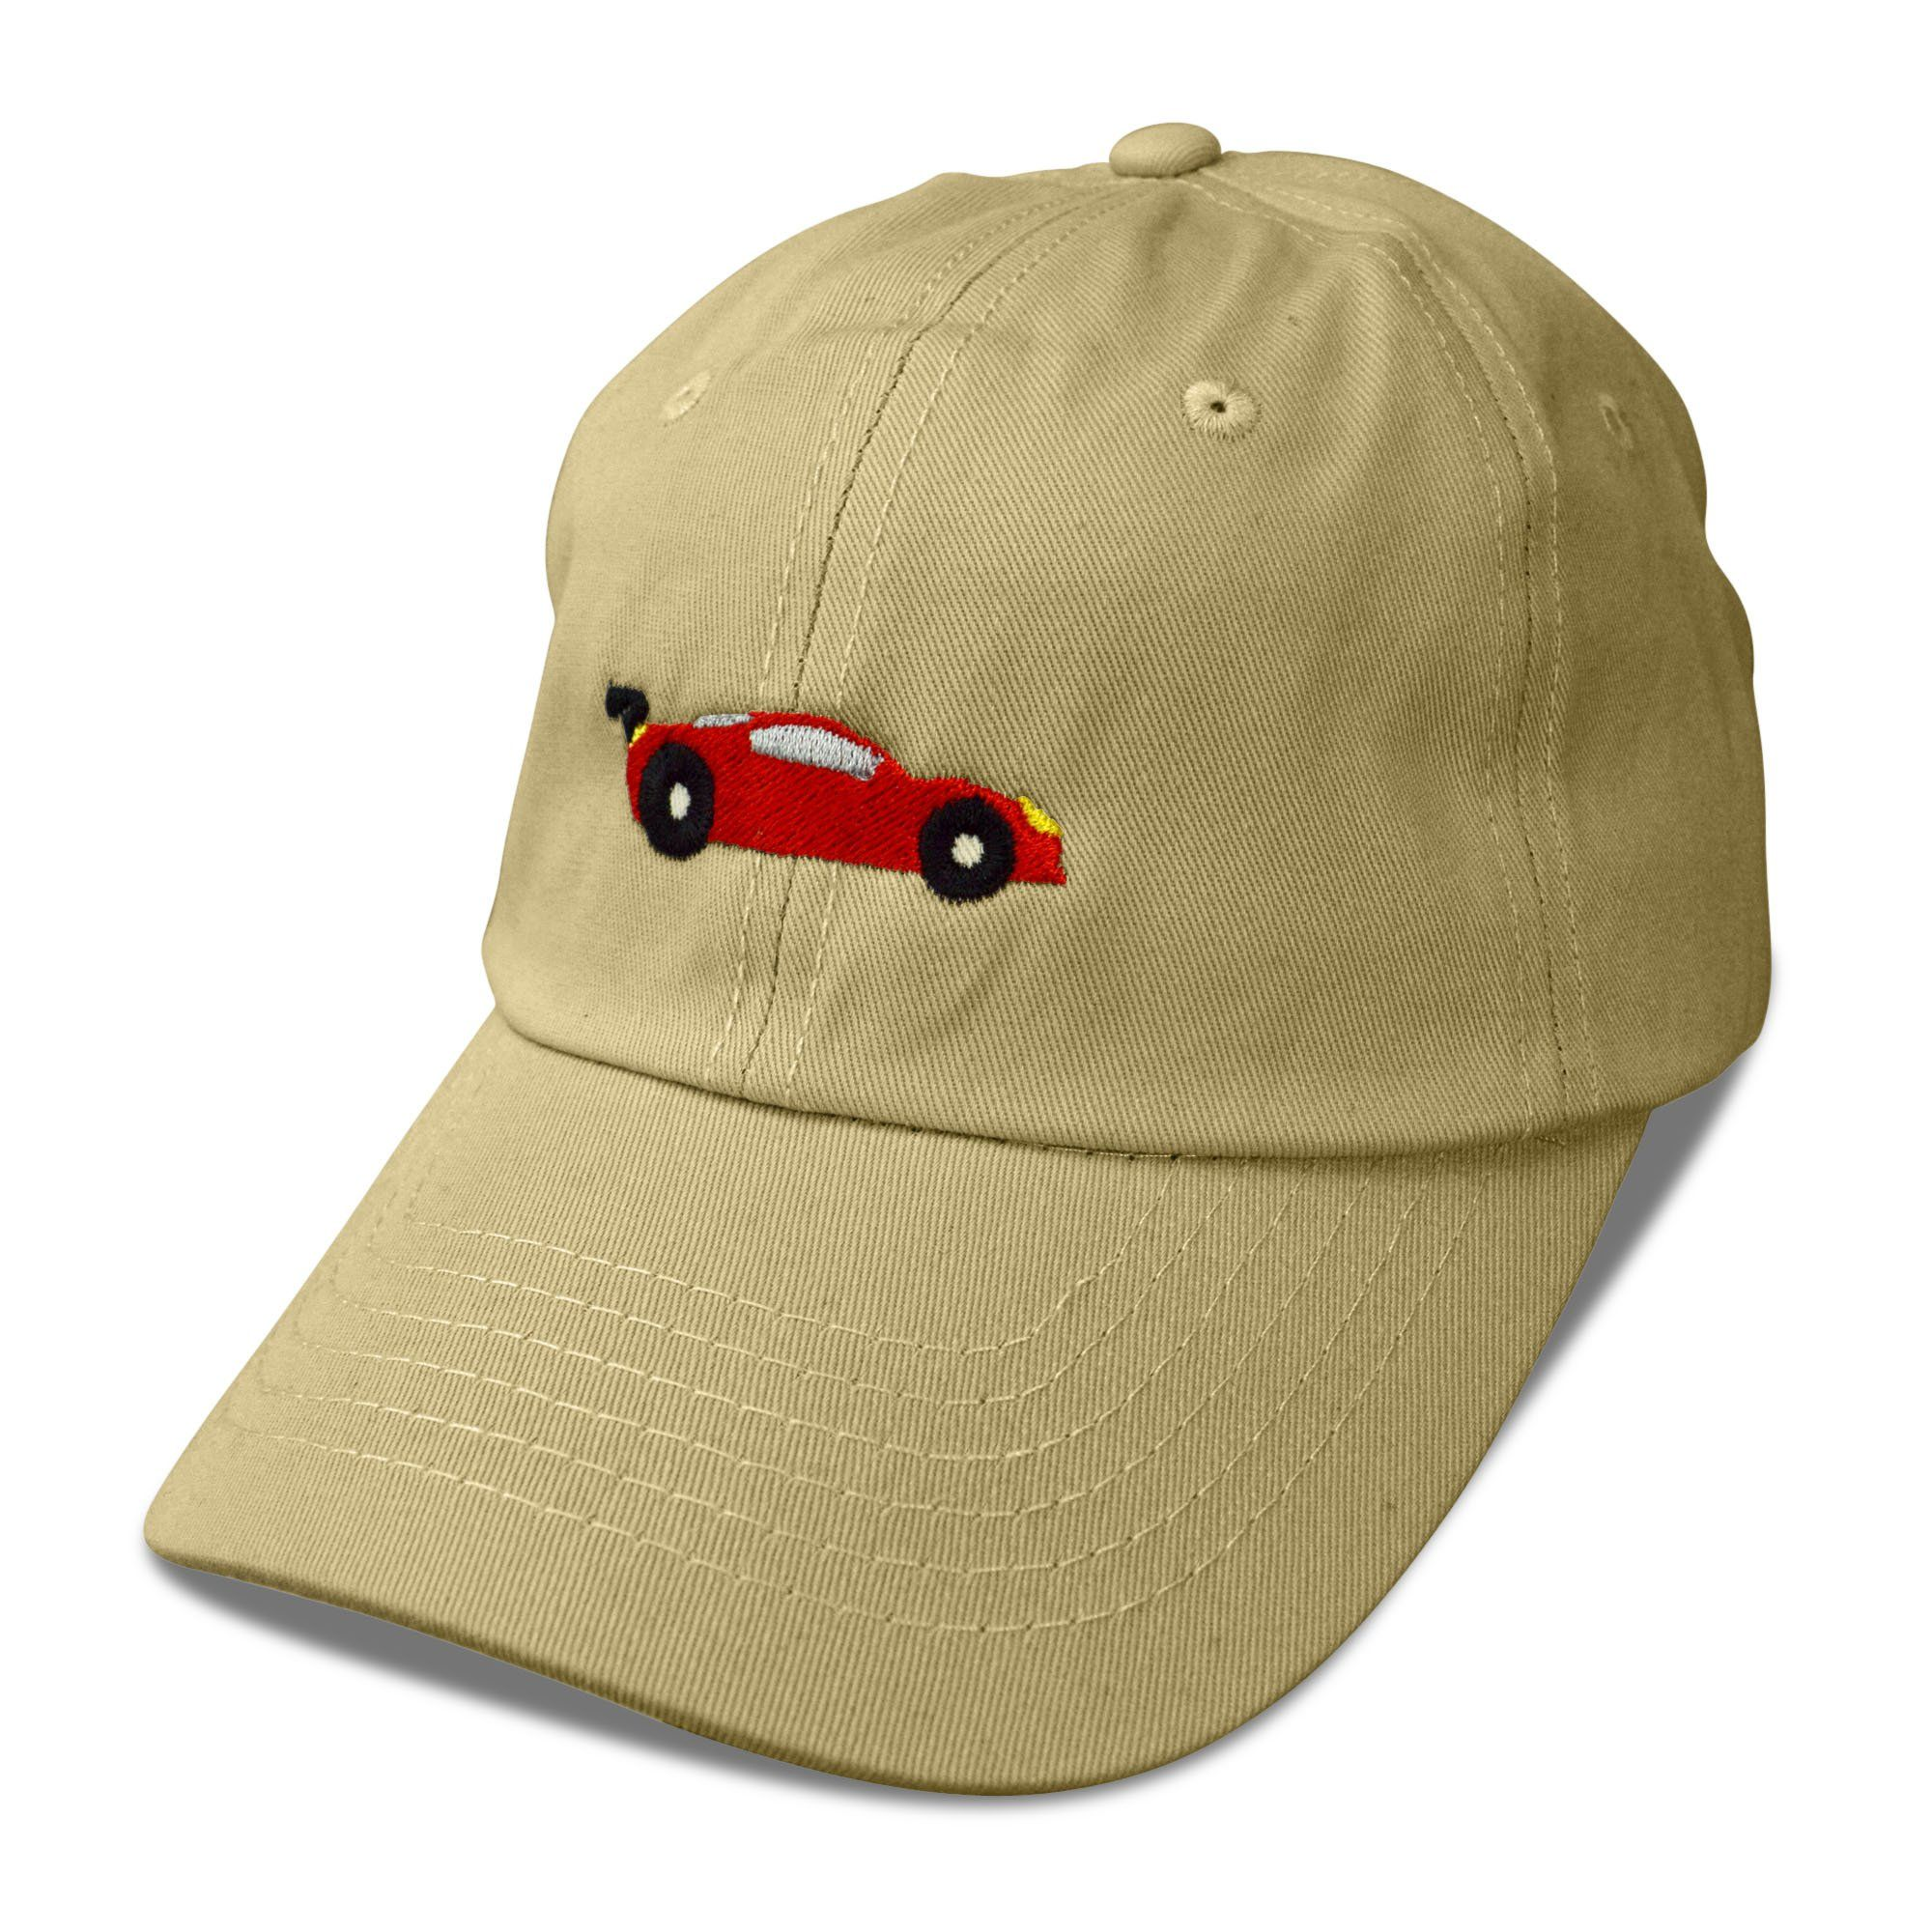 Custom Race Car Logo Embroidered Design Fits Most Adults This Hat Features An Adjustable Metal Buckle Featur Race Cars Dad Hats Baseball Caps Sports Cars